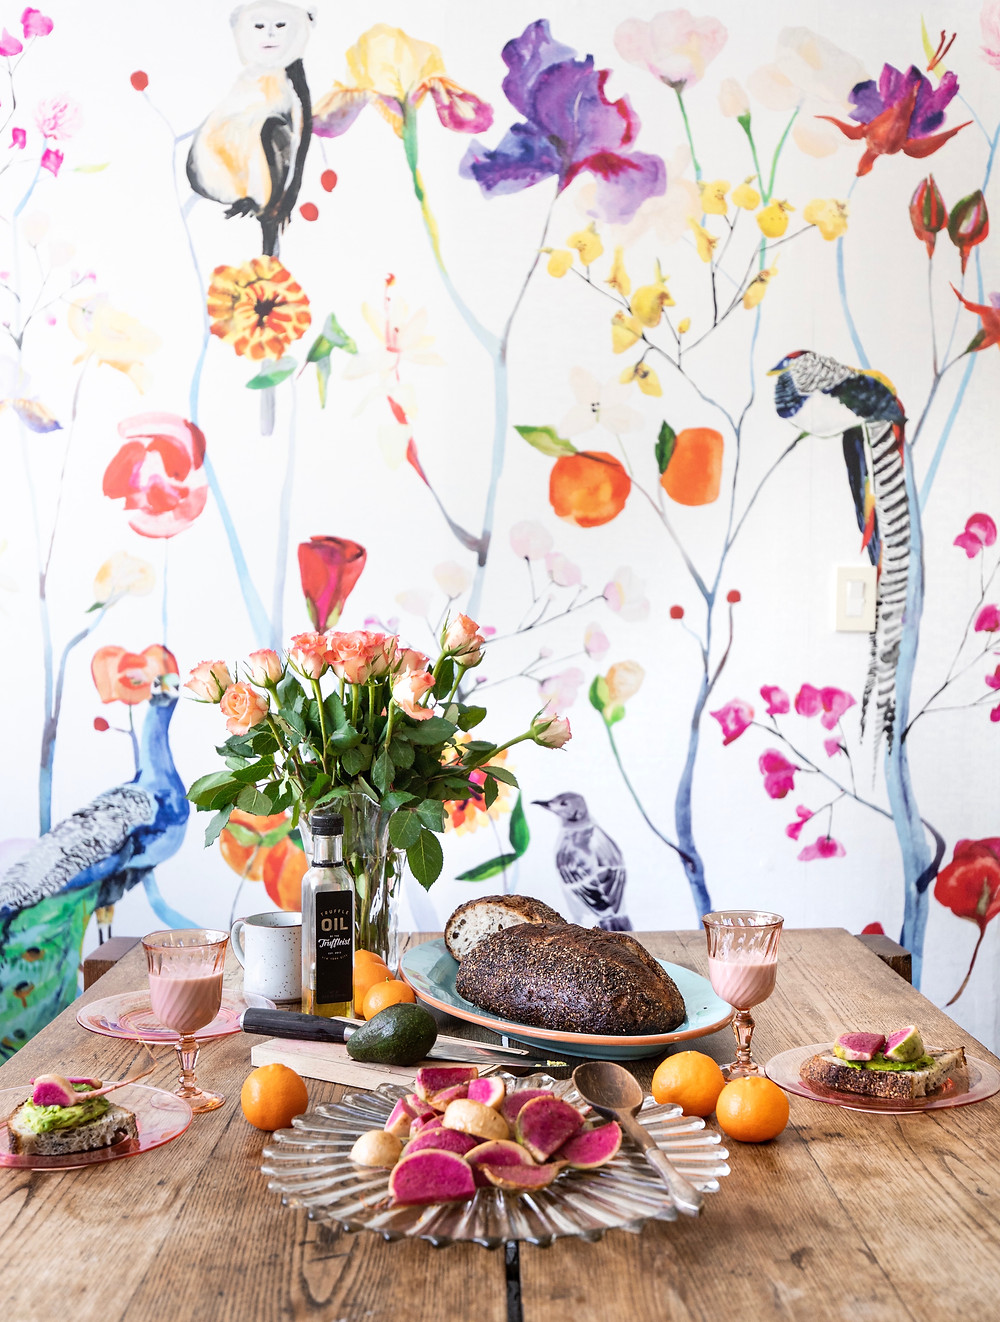 Brunch table with avocado, radish sandwich. Floral wallpaper and flower arrangement